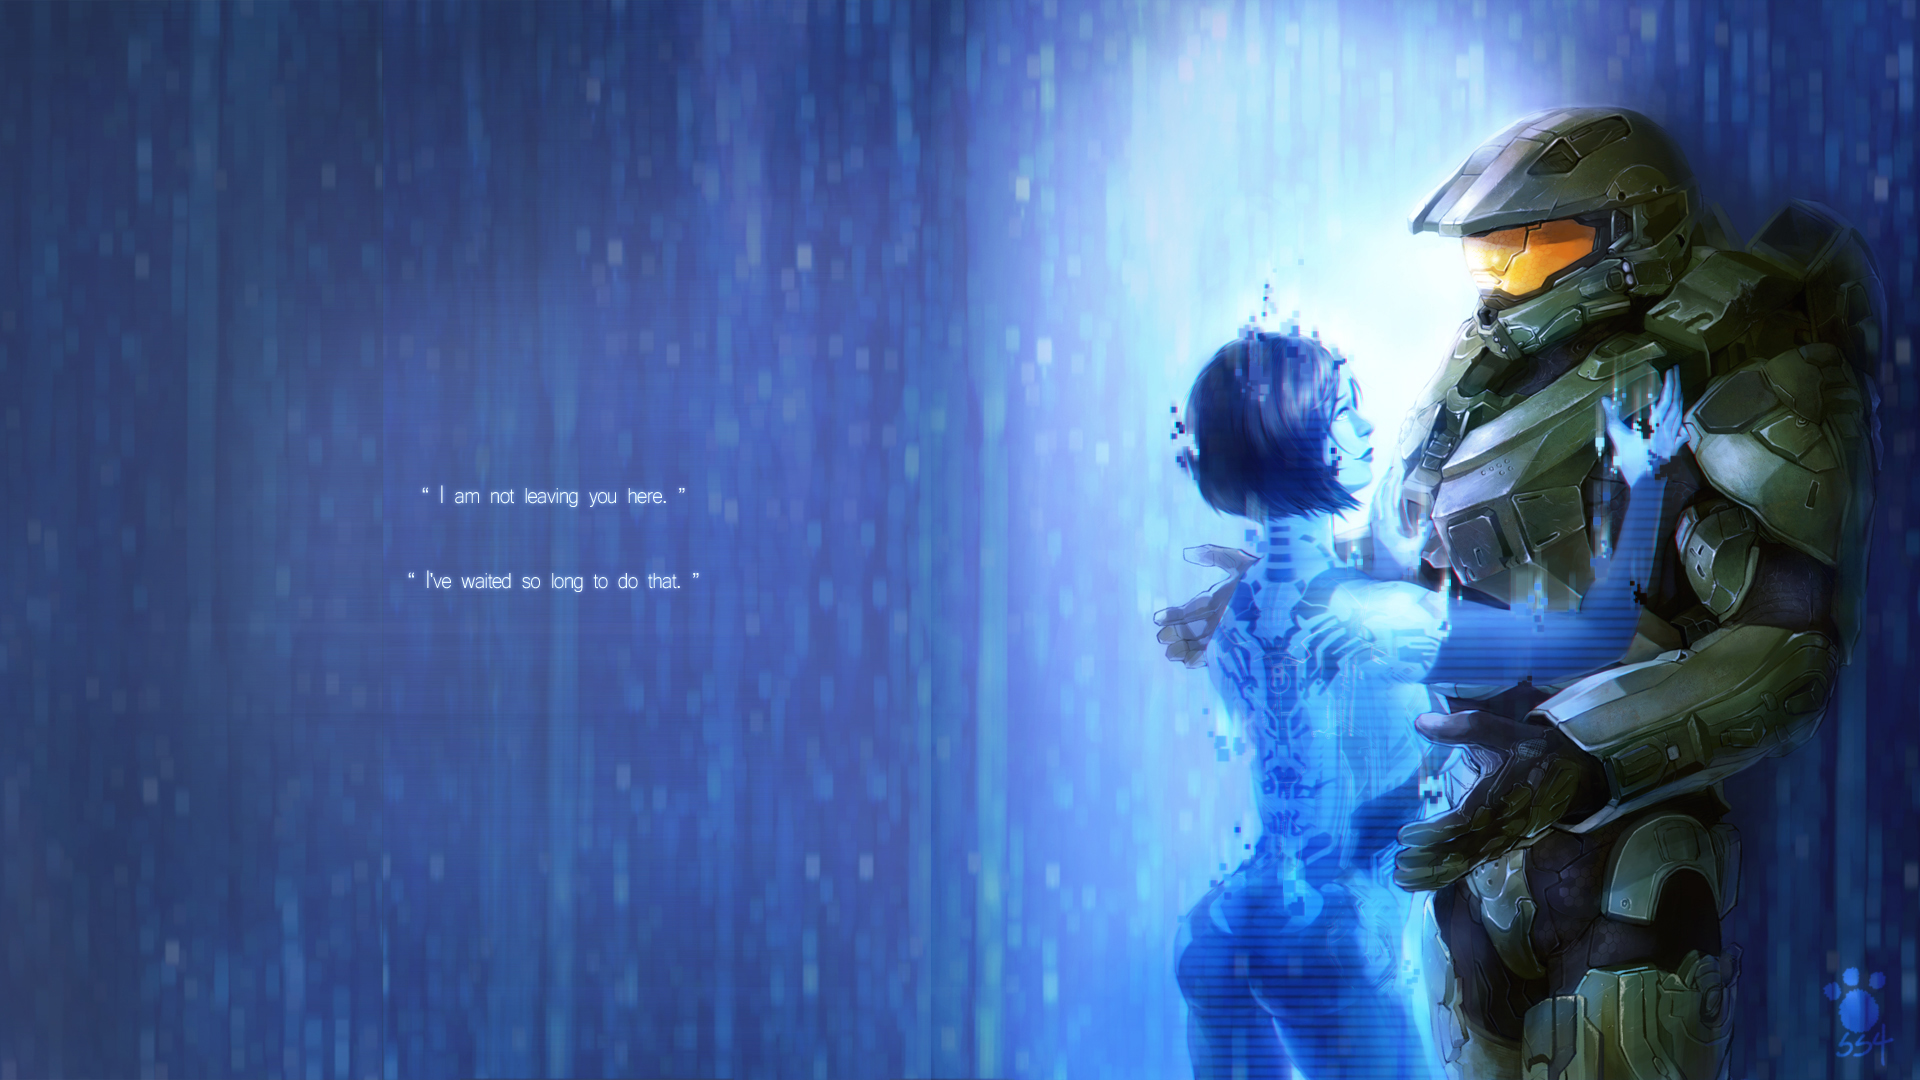 HALO 4 - I've waited so long to do that by lotushim554 on